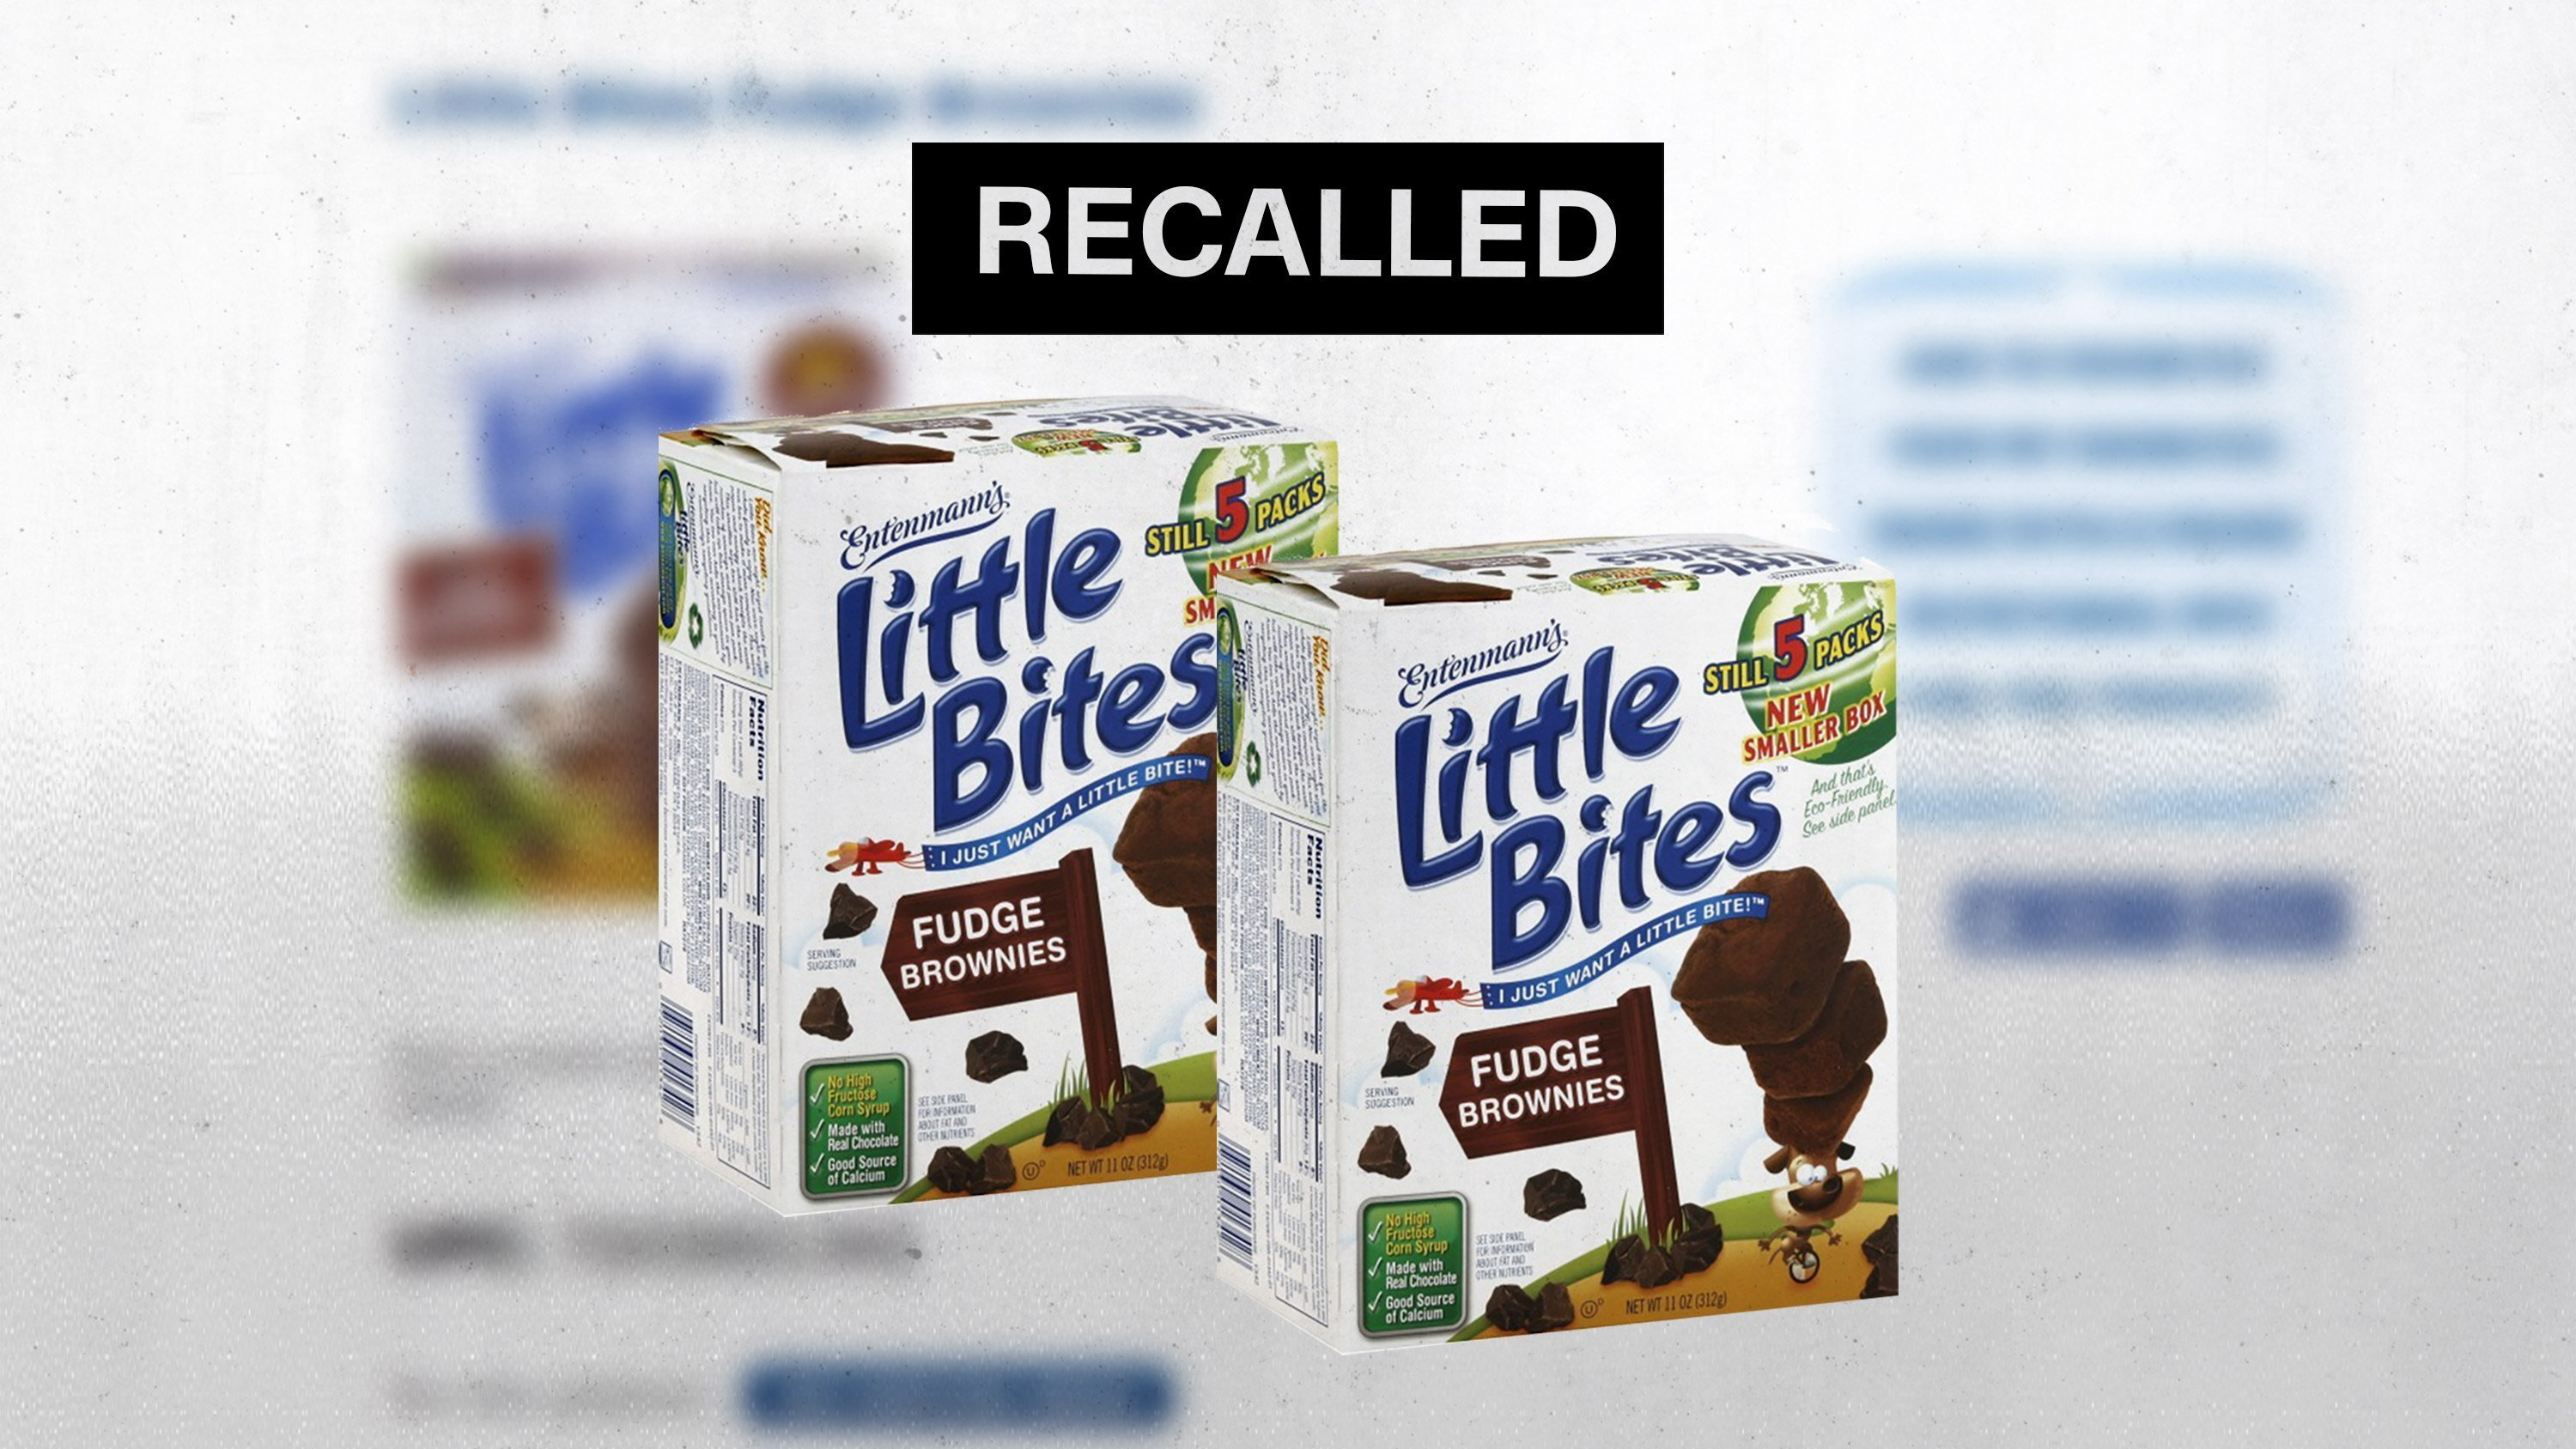 Entenmann's recalls Little Bite snacks for plastic contamination